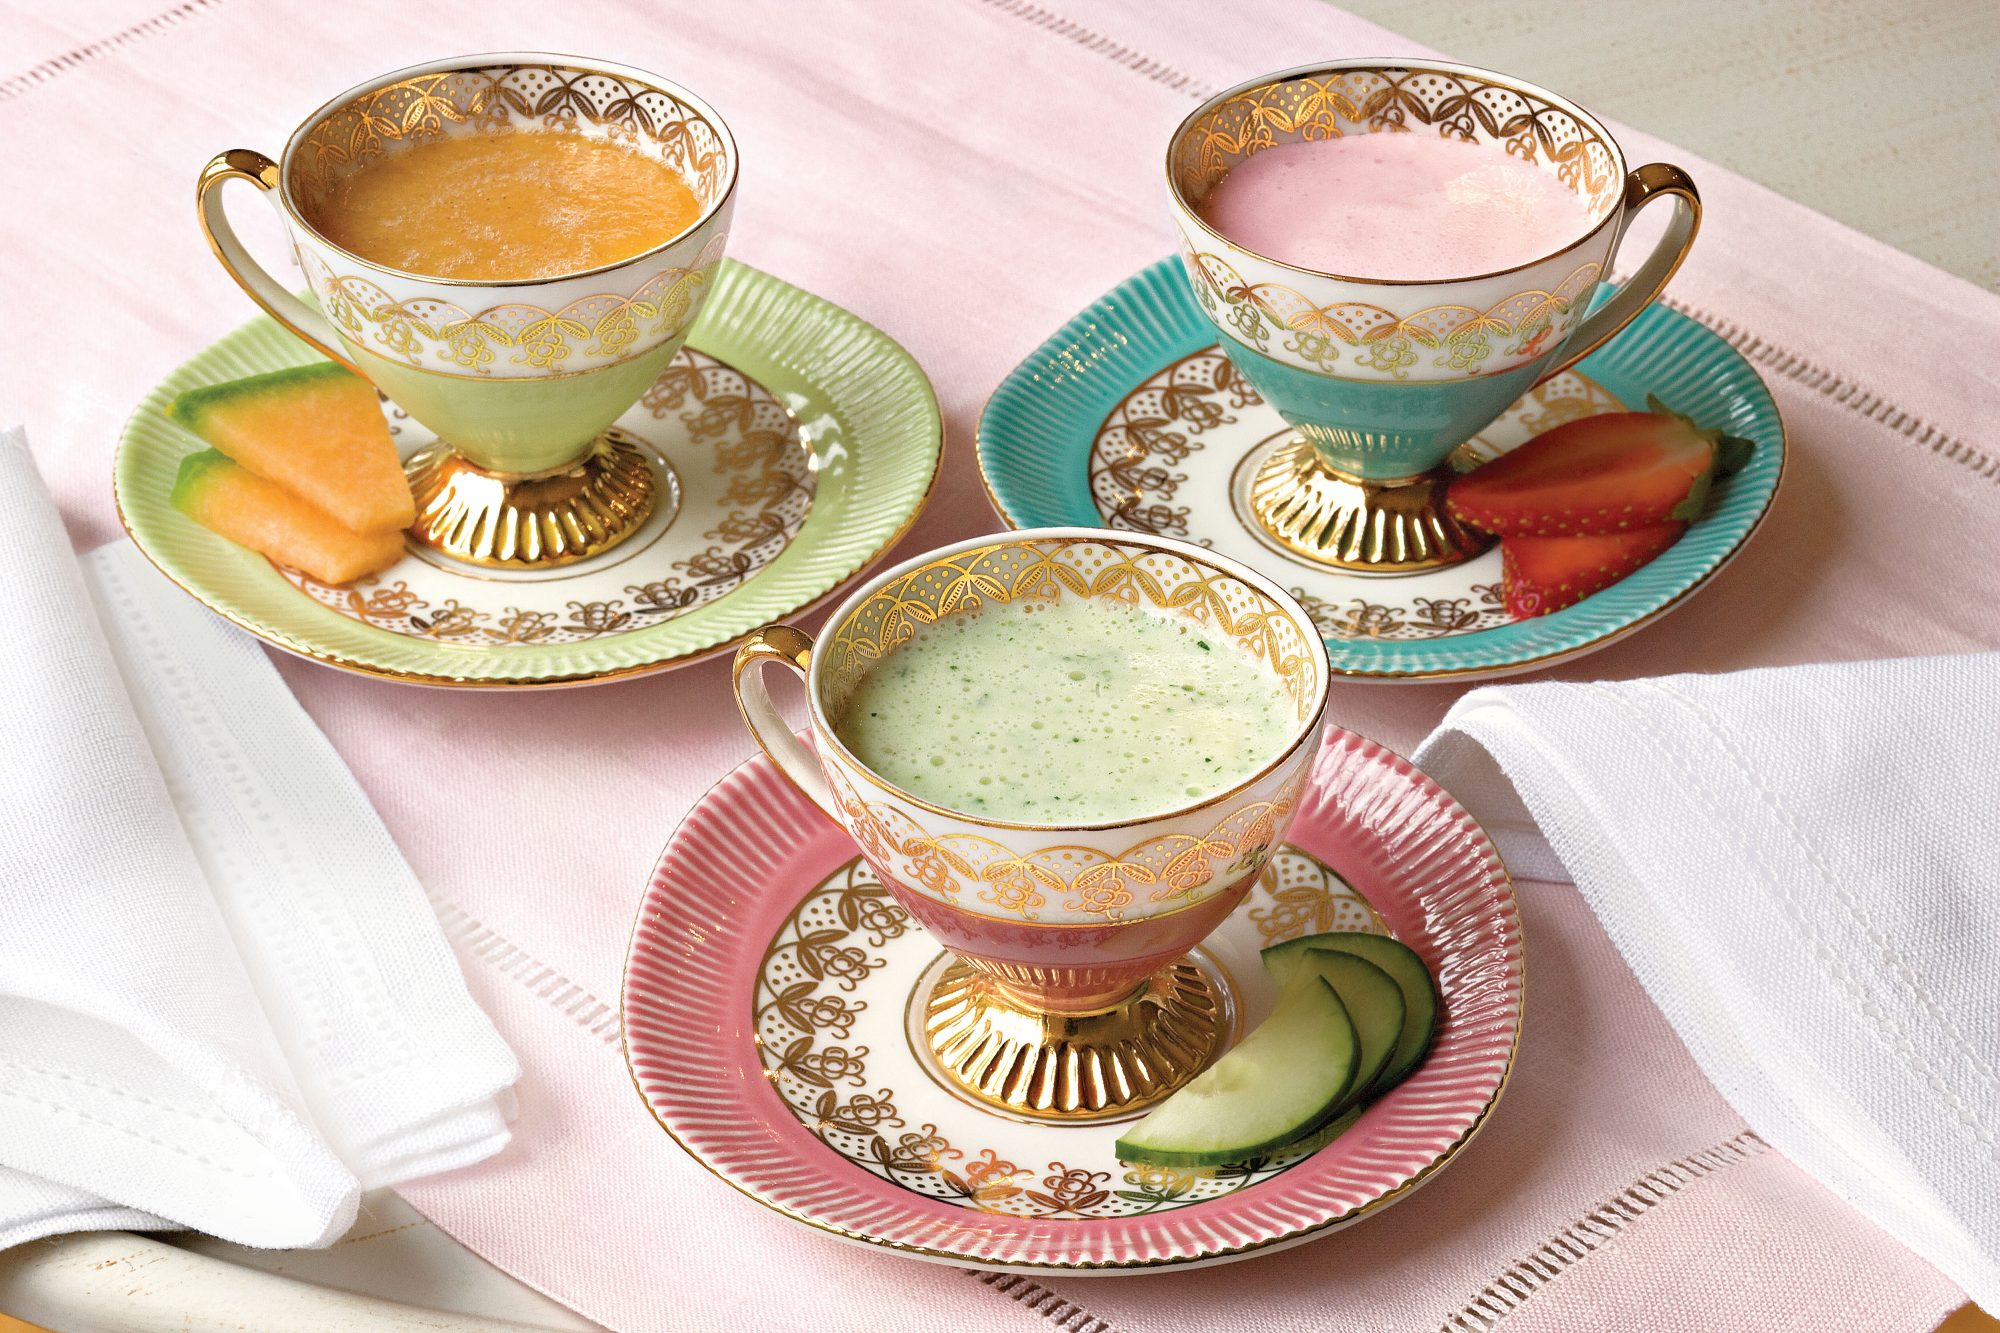 Chilled Soups